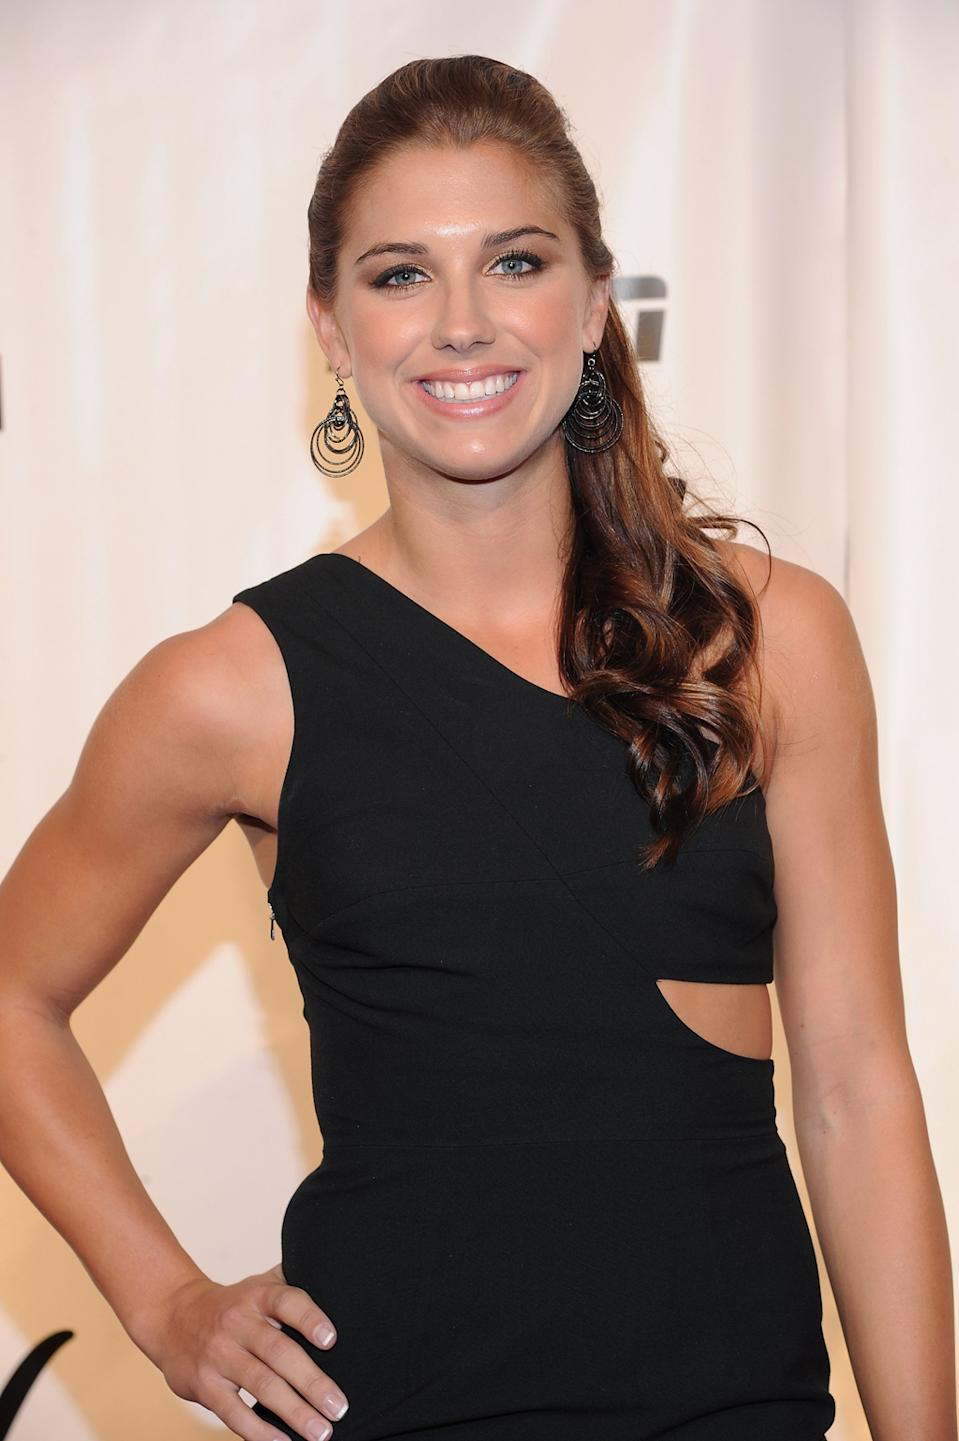 """<b>Alex Morgan</b><br> U.S. soccer champ Alex Morgan is brains and beauty, having graduated early from the University of California, Berkeley. She went onto be the youngest player on USA's roster at the 2011 FIFA Women's World Cup and scored her team's first goal at the London Olympics. Check out <a href=""""http://sports.yahoo.com/photos/olympics-soccer-star-alex-morgan-slideshow/"""" data-ylk=""""slk:more photos of Alex;outcm:mb_qualified_link;_E:mb_qualified_link;ct:story;"""" class=""""link rapid-noclick-resp yahoo-link"""">more photos of Alex</a> here. (Photo by Jason Kempin/Getty Images)"""